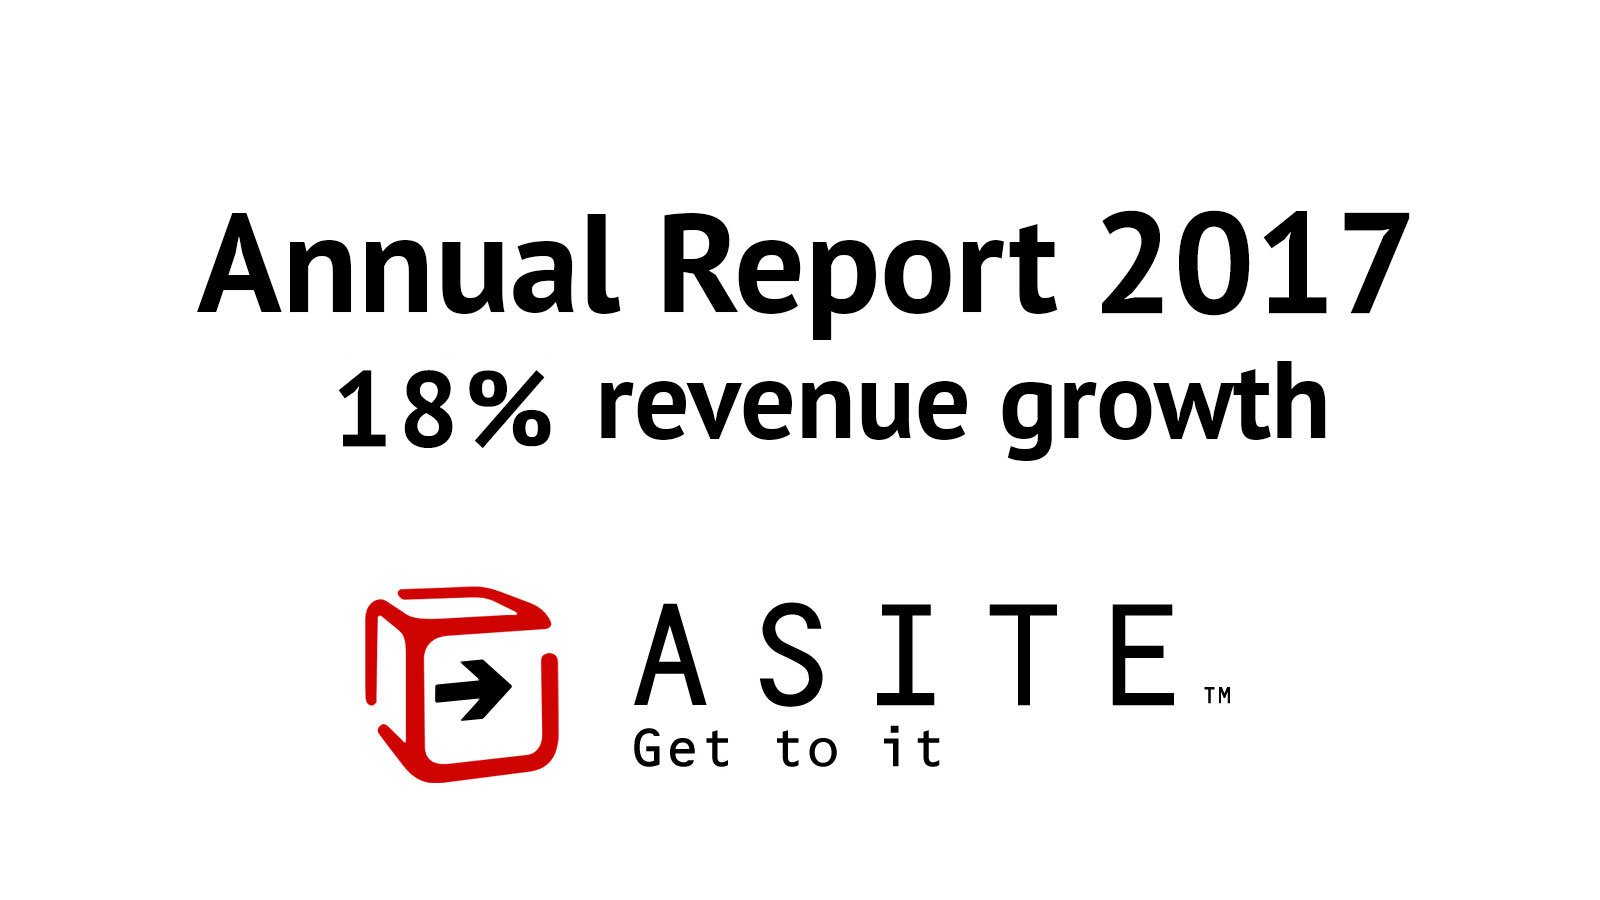 Asite announces 18% revenue growth in its 2017 Annual Report